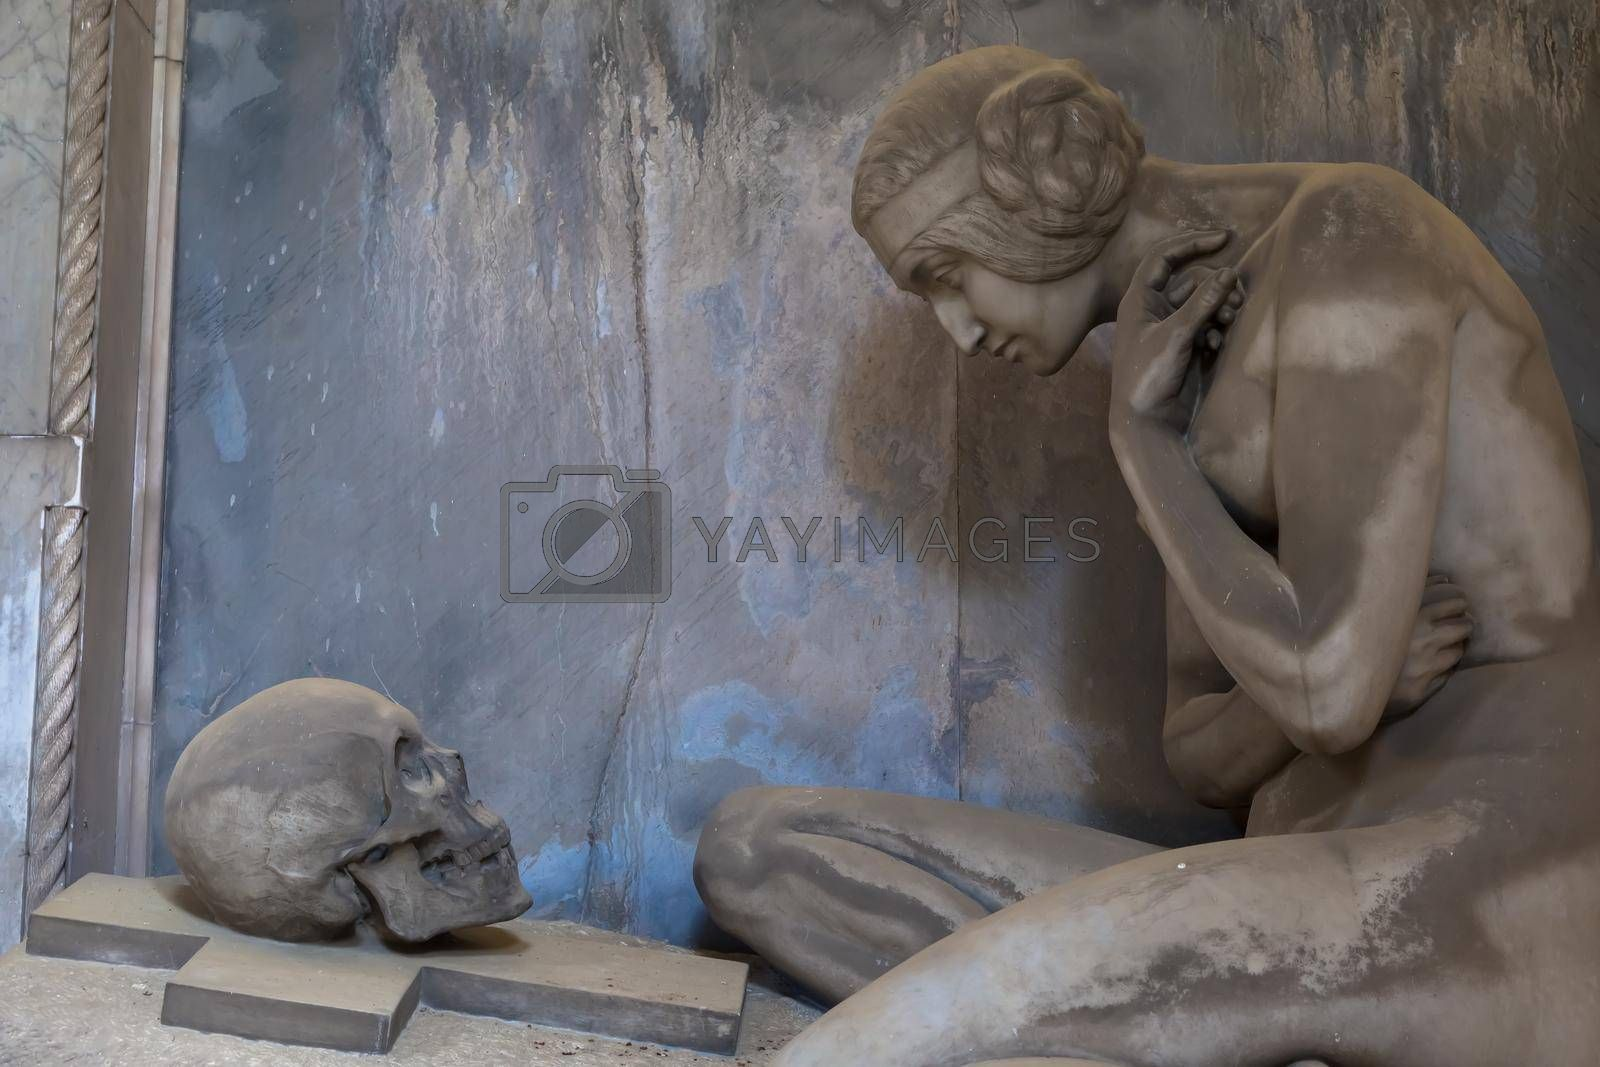 Royalty free image of Statue on an old tomb - beginning of 1800, marble - located in Genoa cemetery, Italy by Perseomedusa